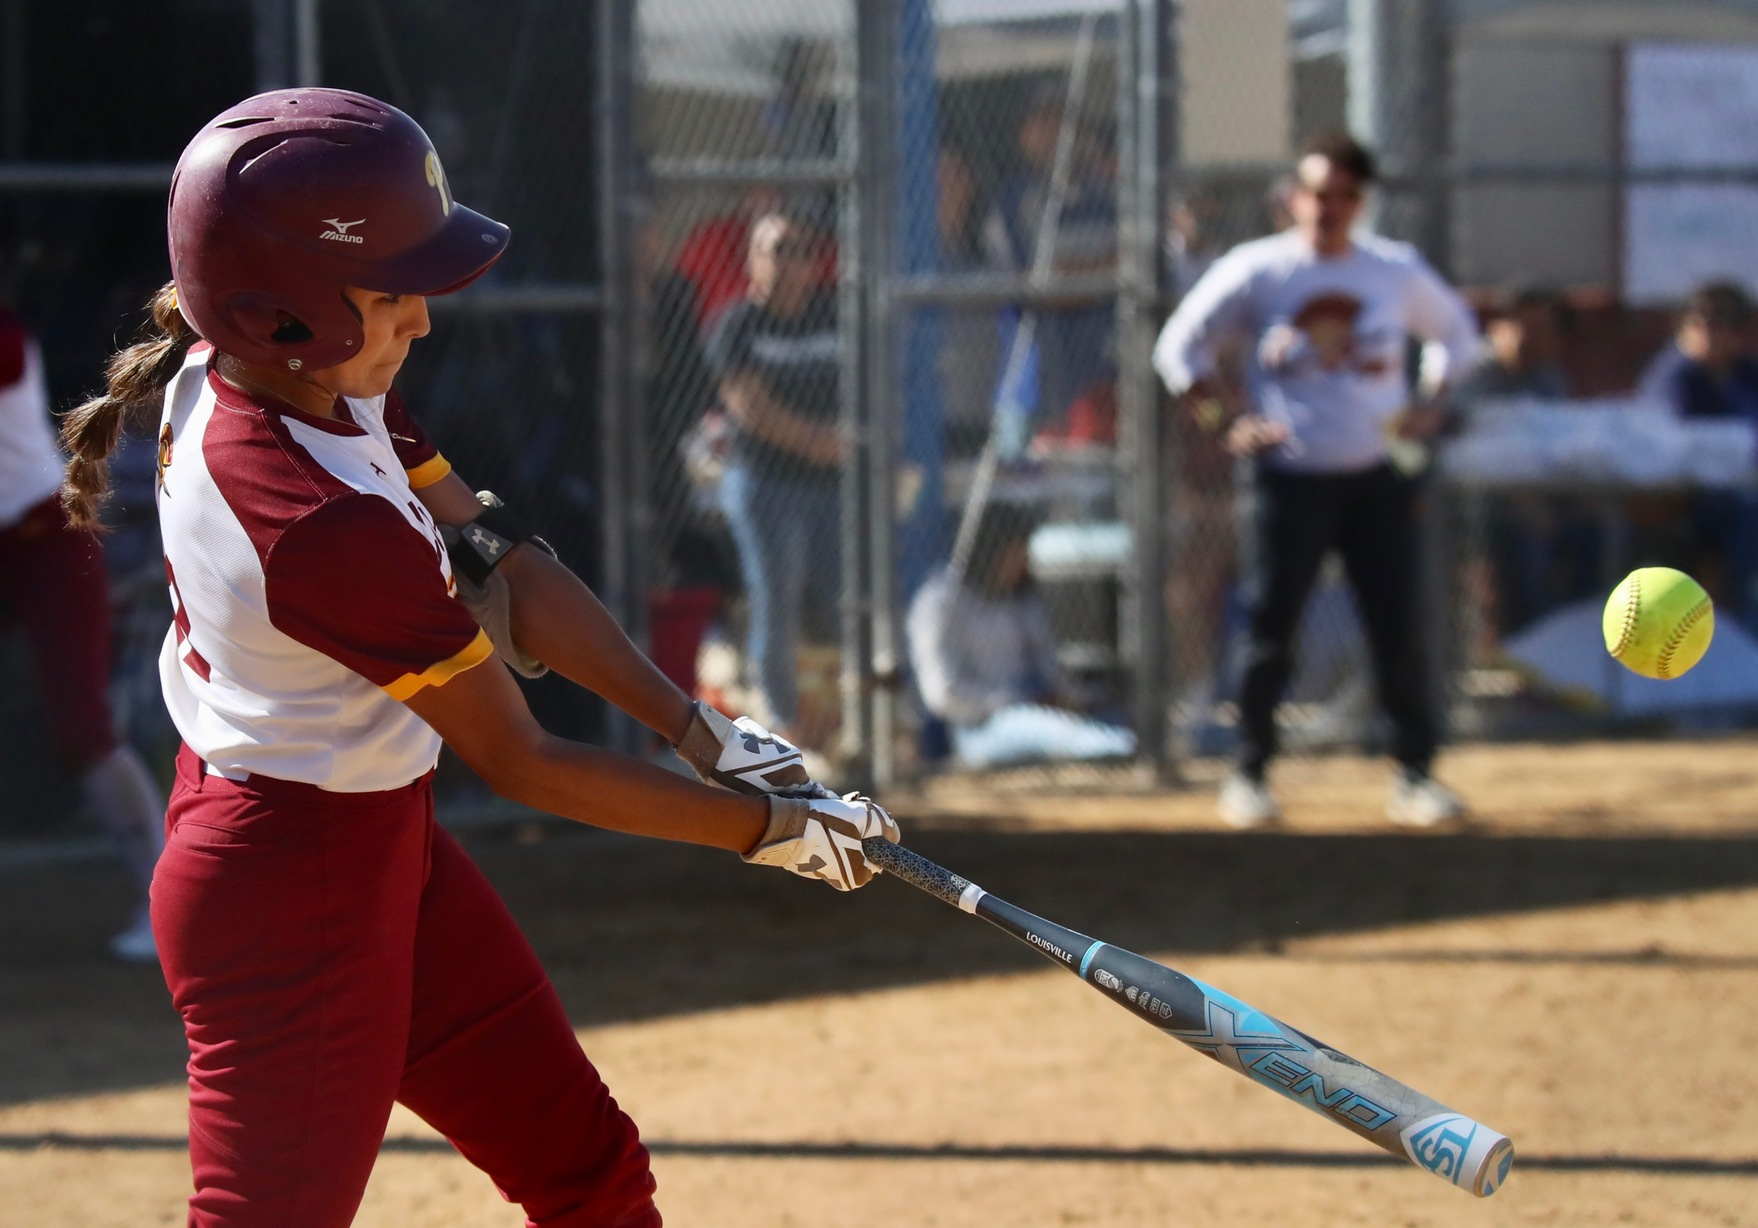 Samantha Diaz connects for a home run in PCC's game on Saturday at Robinson Park, photo by Michael Watkins.